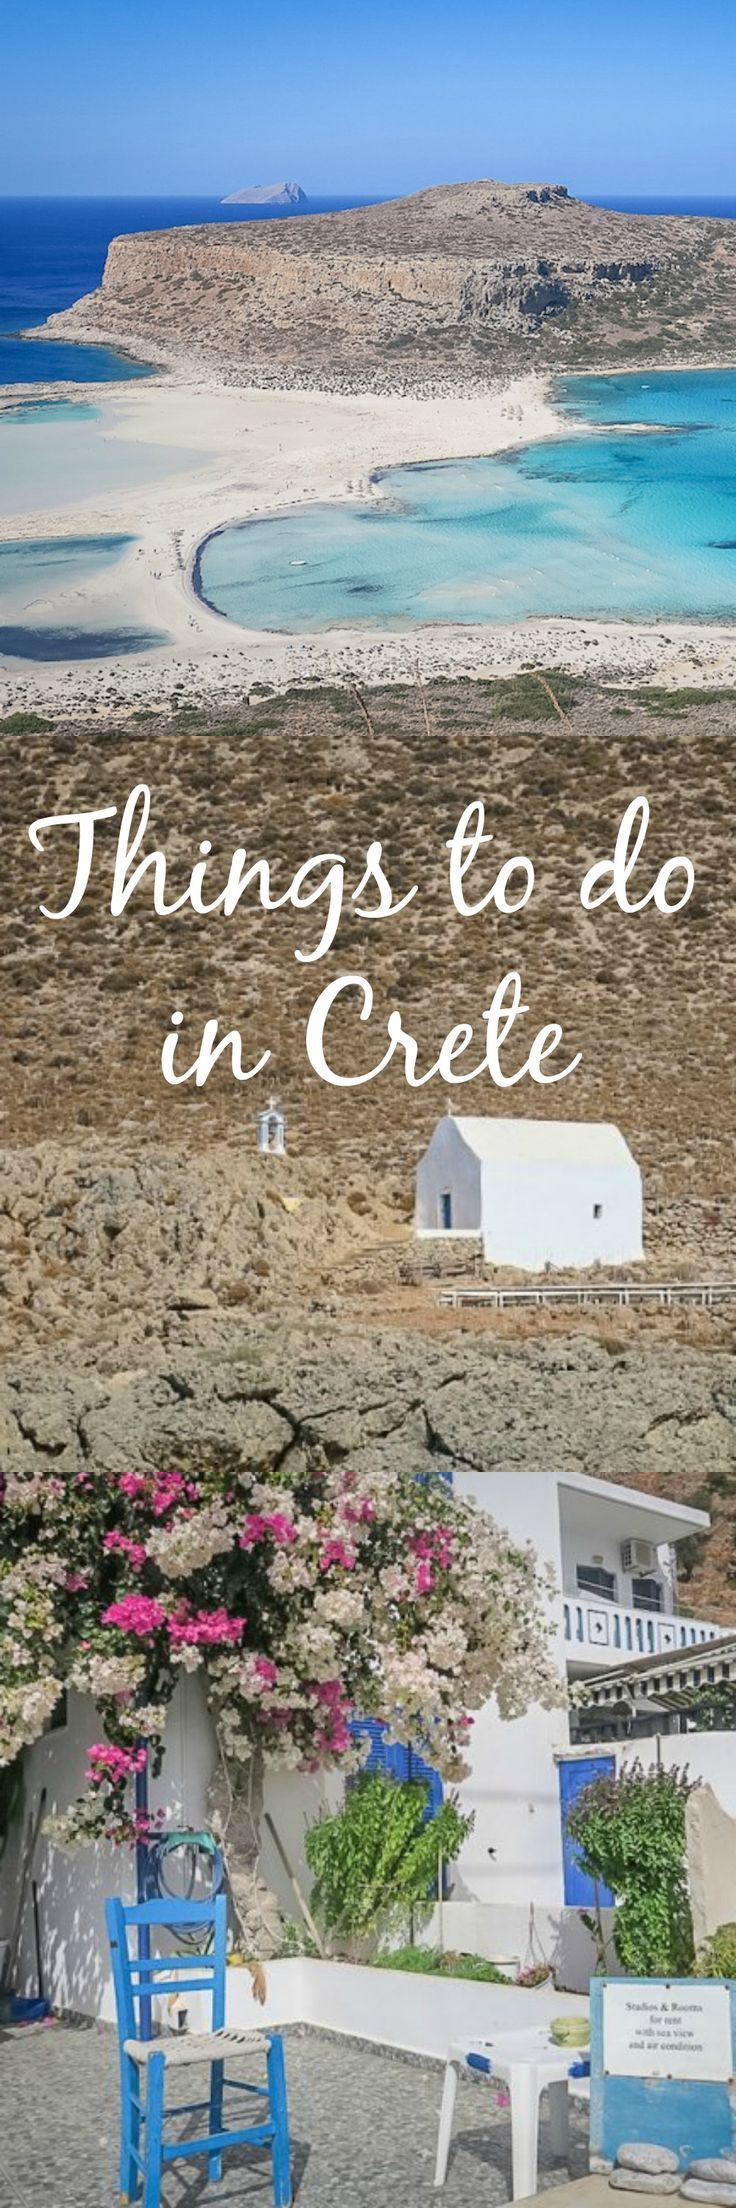 Things to do in Crete, Greece